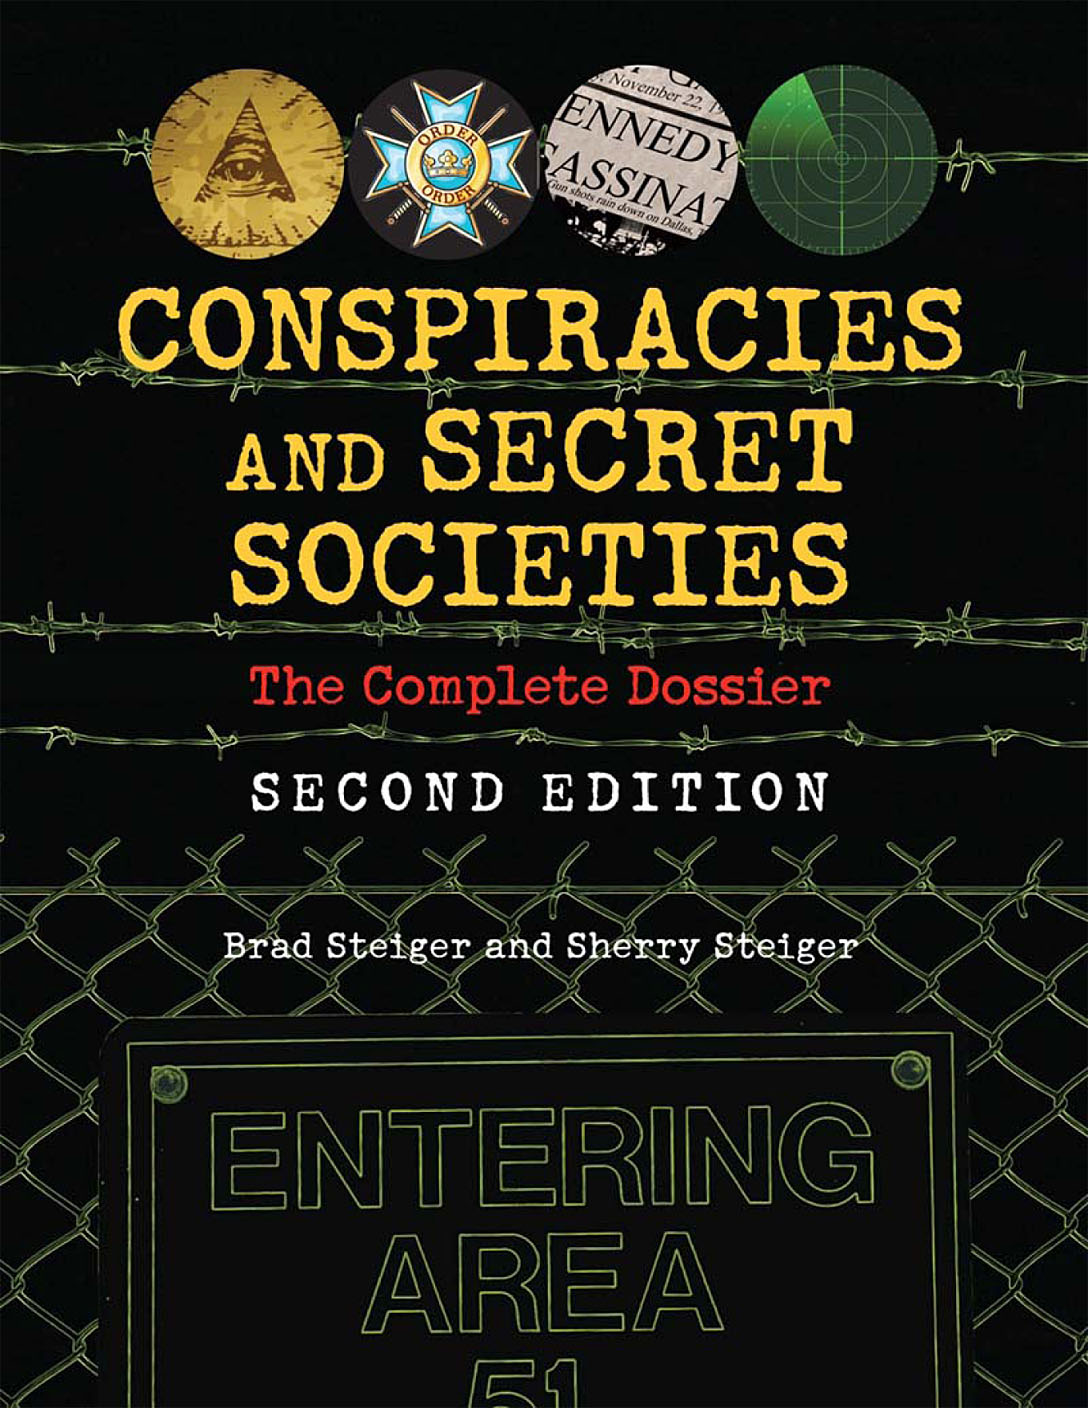 Conspiracies-and-Secret-Societies-The-Complete-Dossier-by-Brad-Steiger-Sherry-Steiger0001.jpg